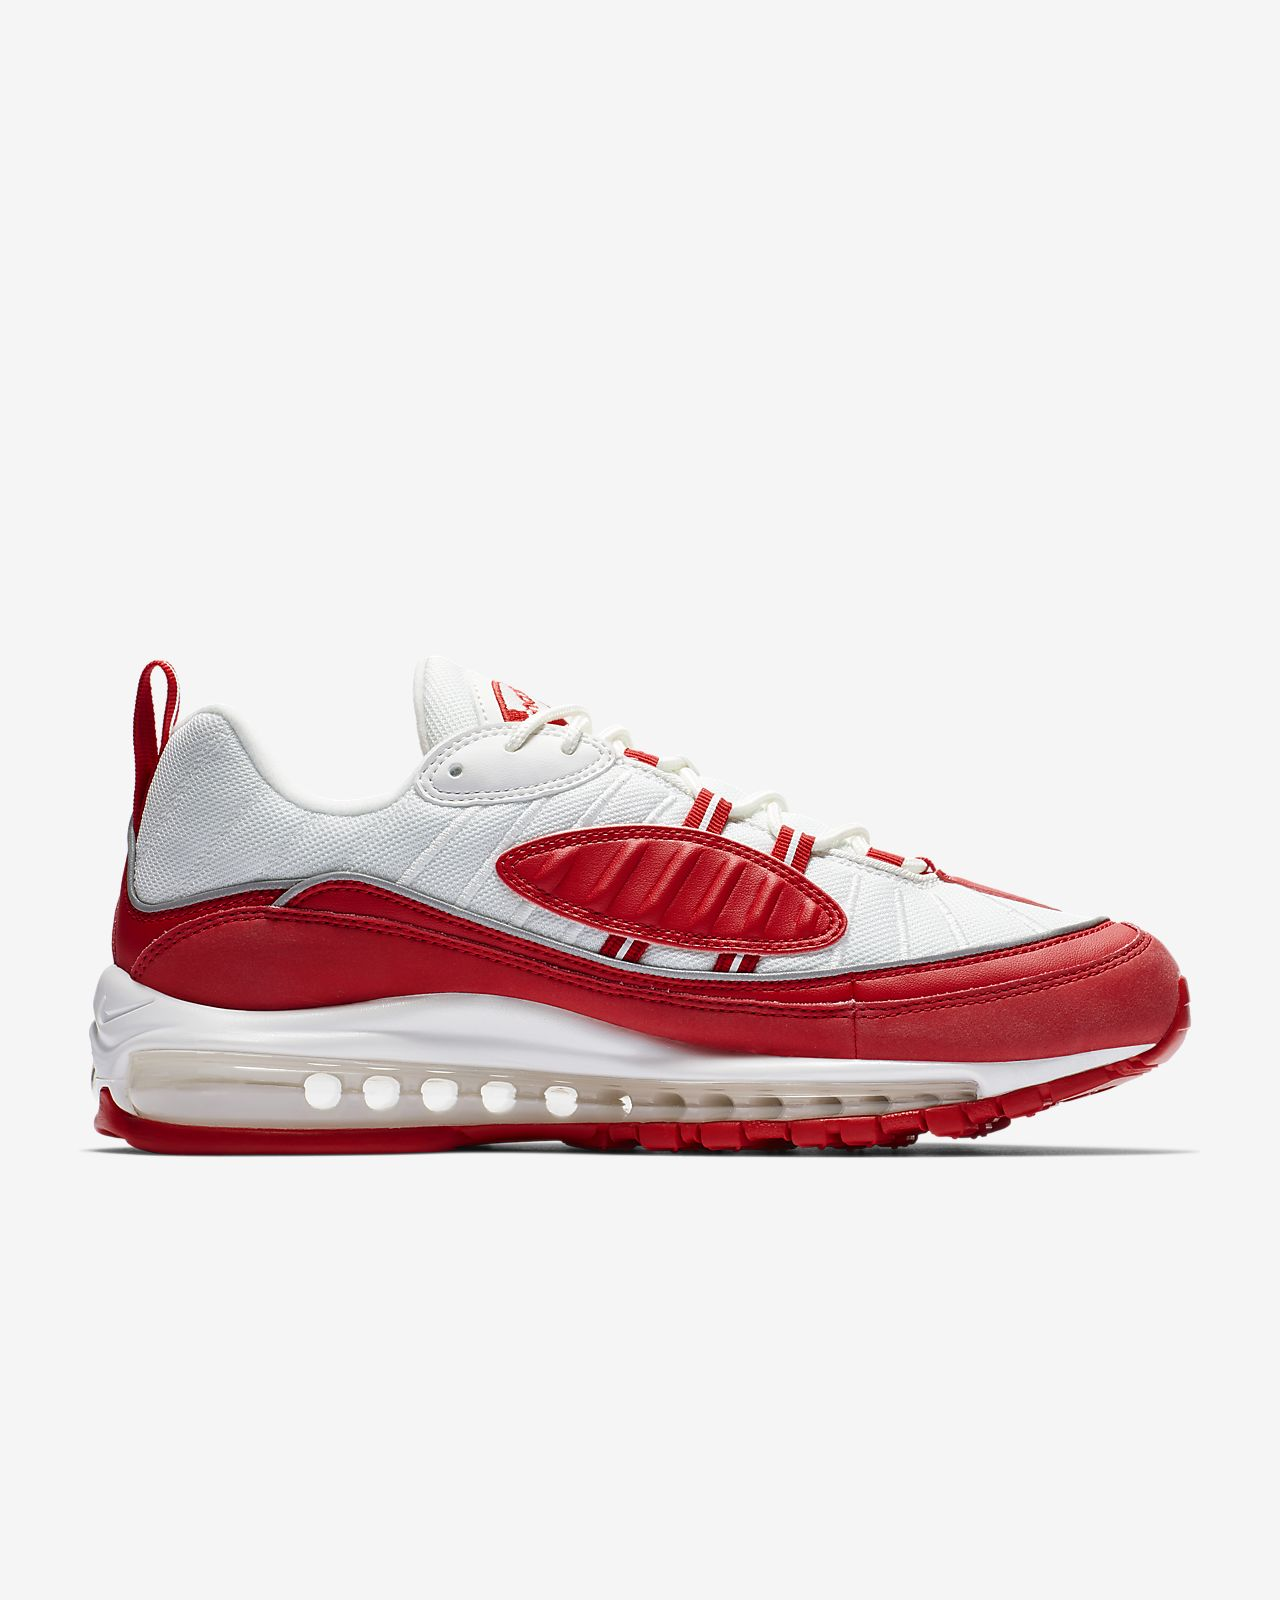 58dbfac8a704 Nike Air Max 98 Men s Shoe. Nike.com